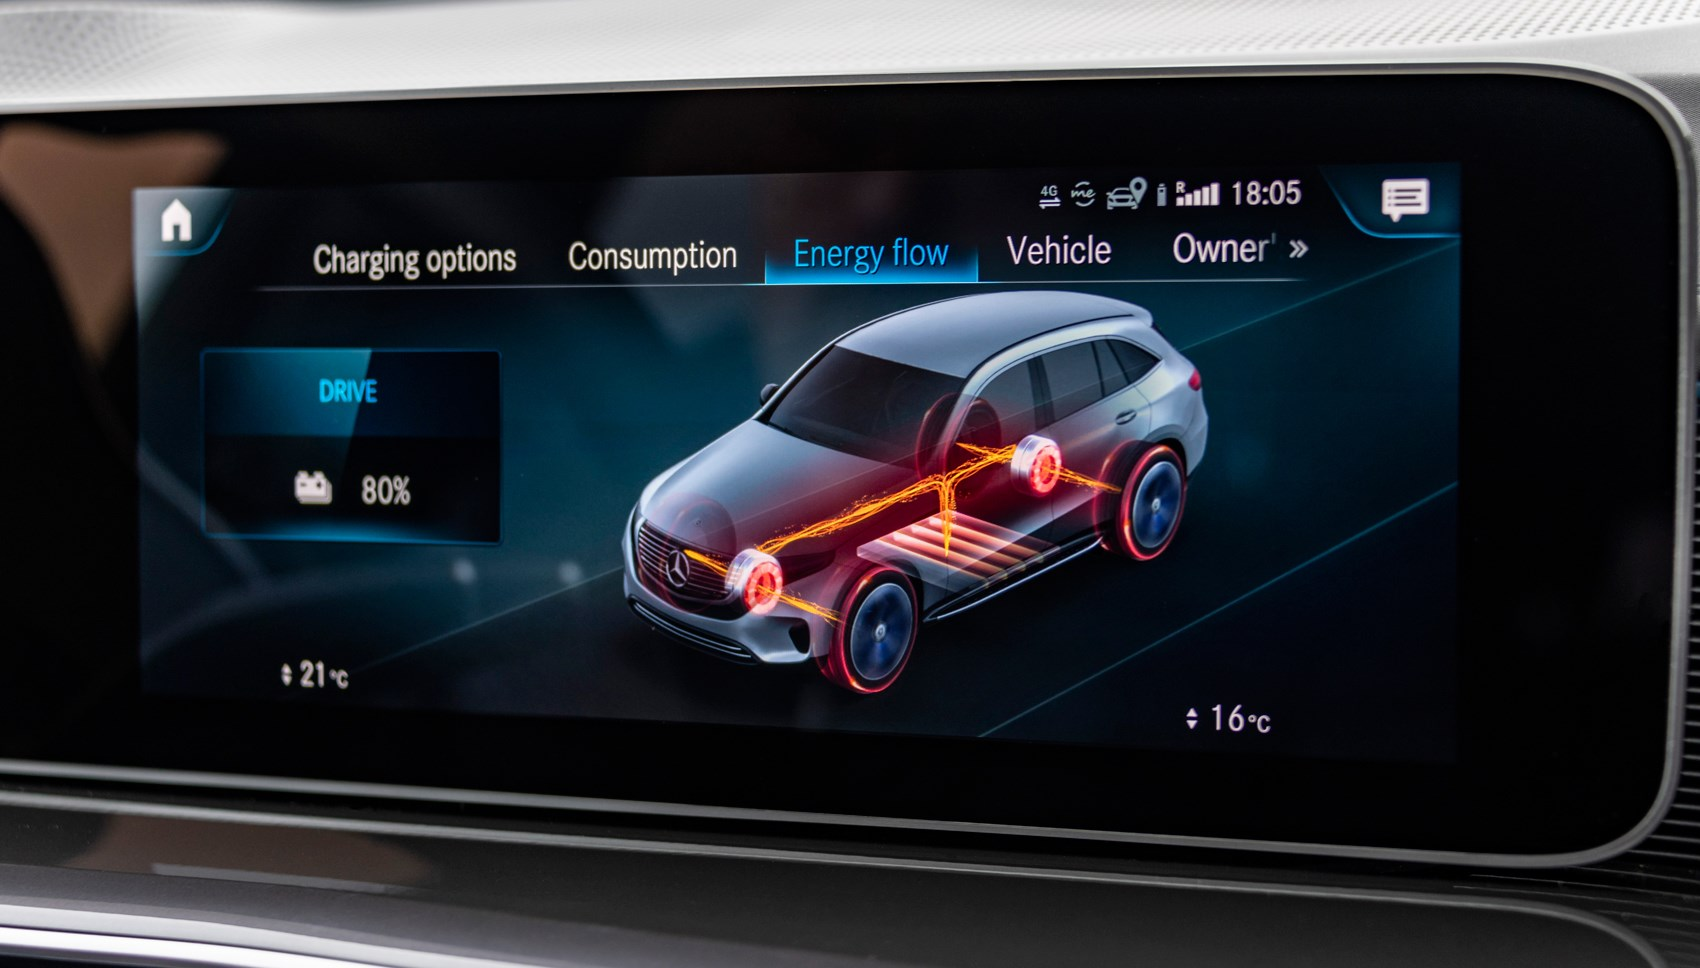 Mercedes EQC energy monitor